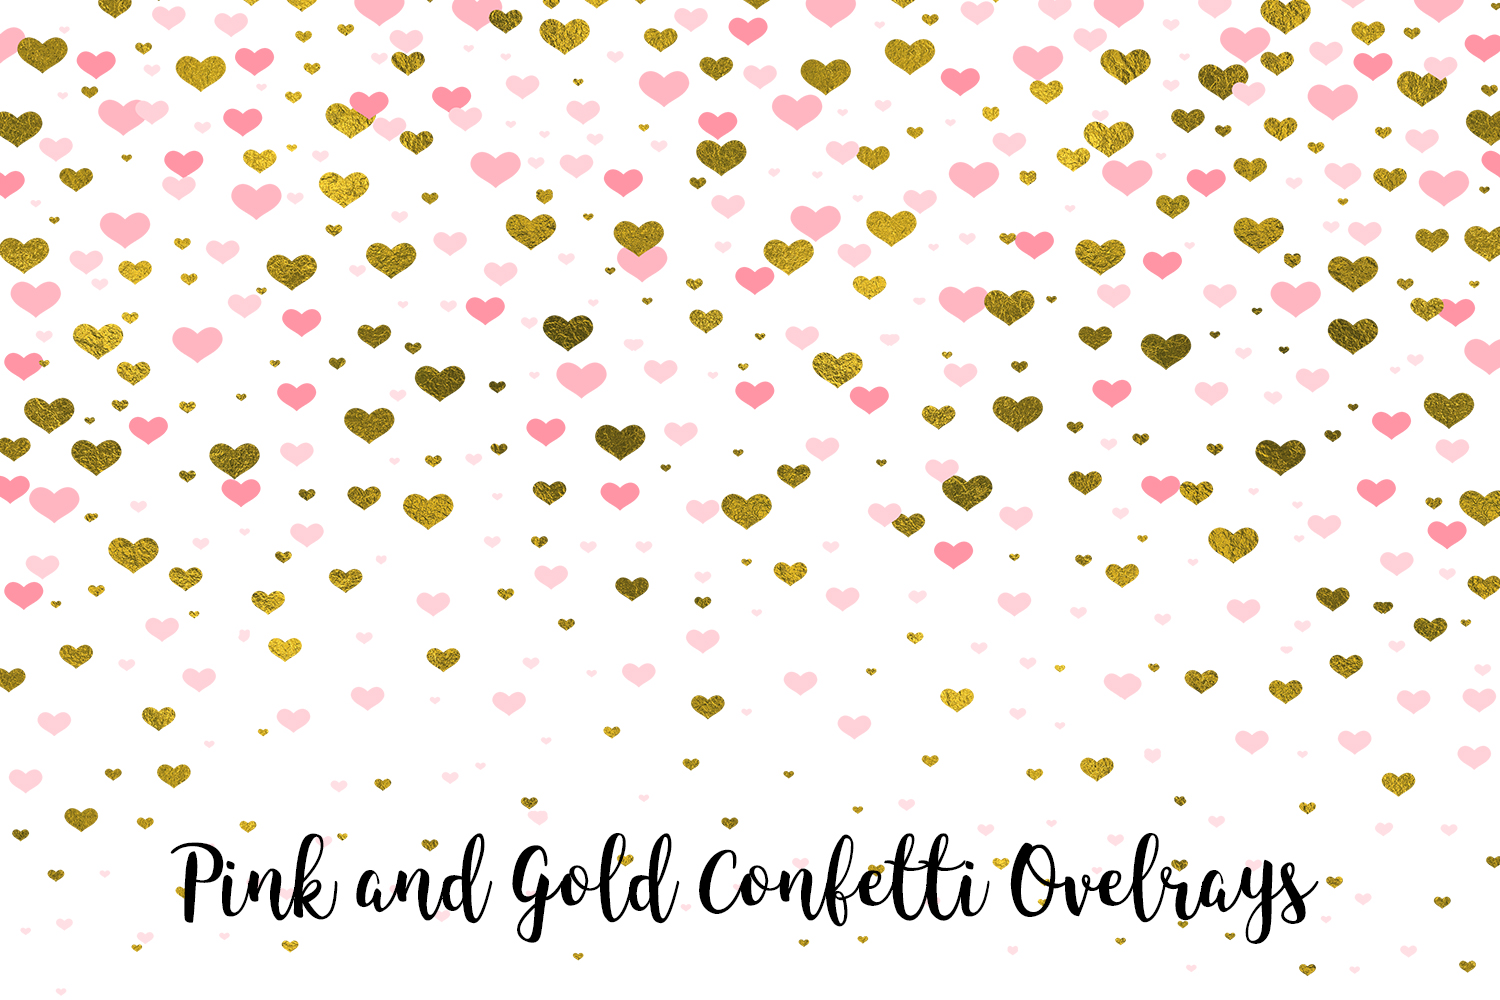 Pink and Gold Confetti Overlays, Transparent PNGs example image 3